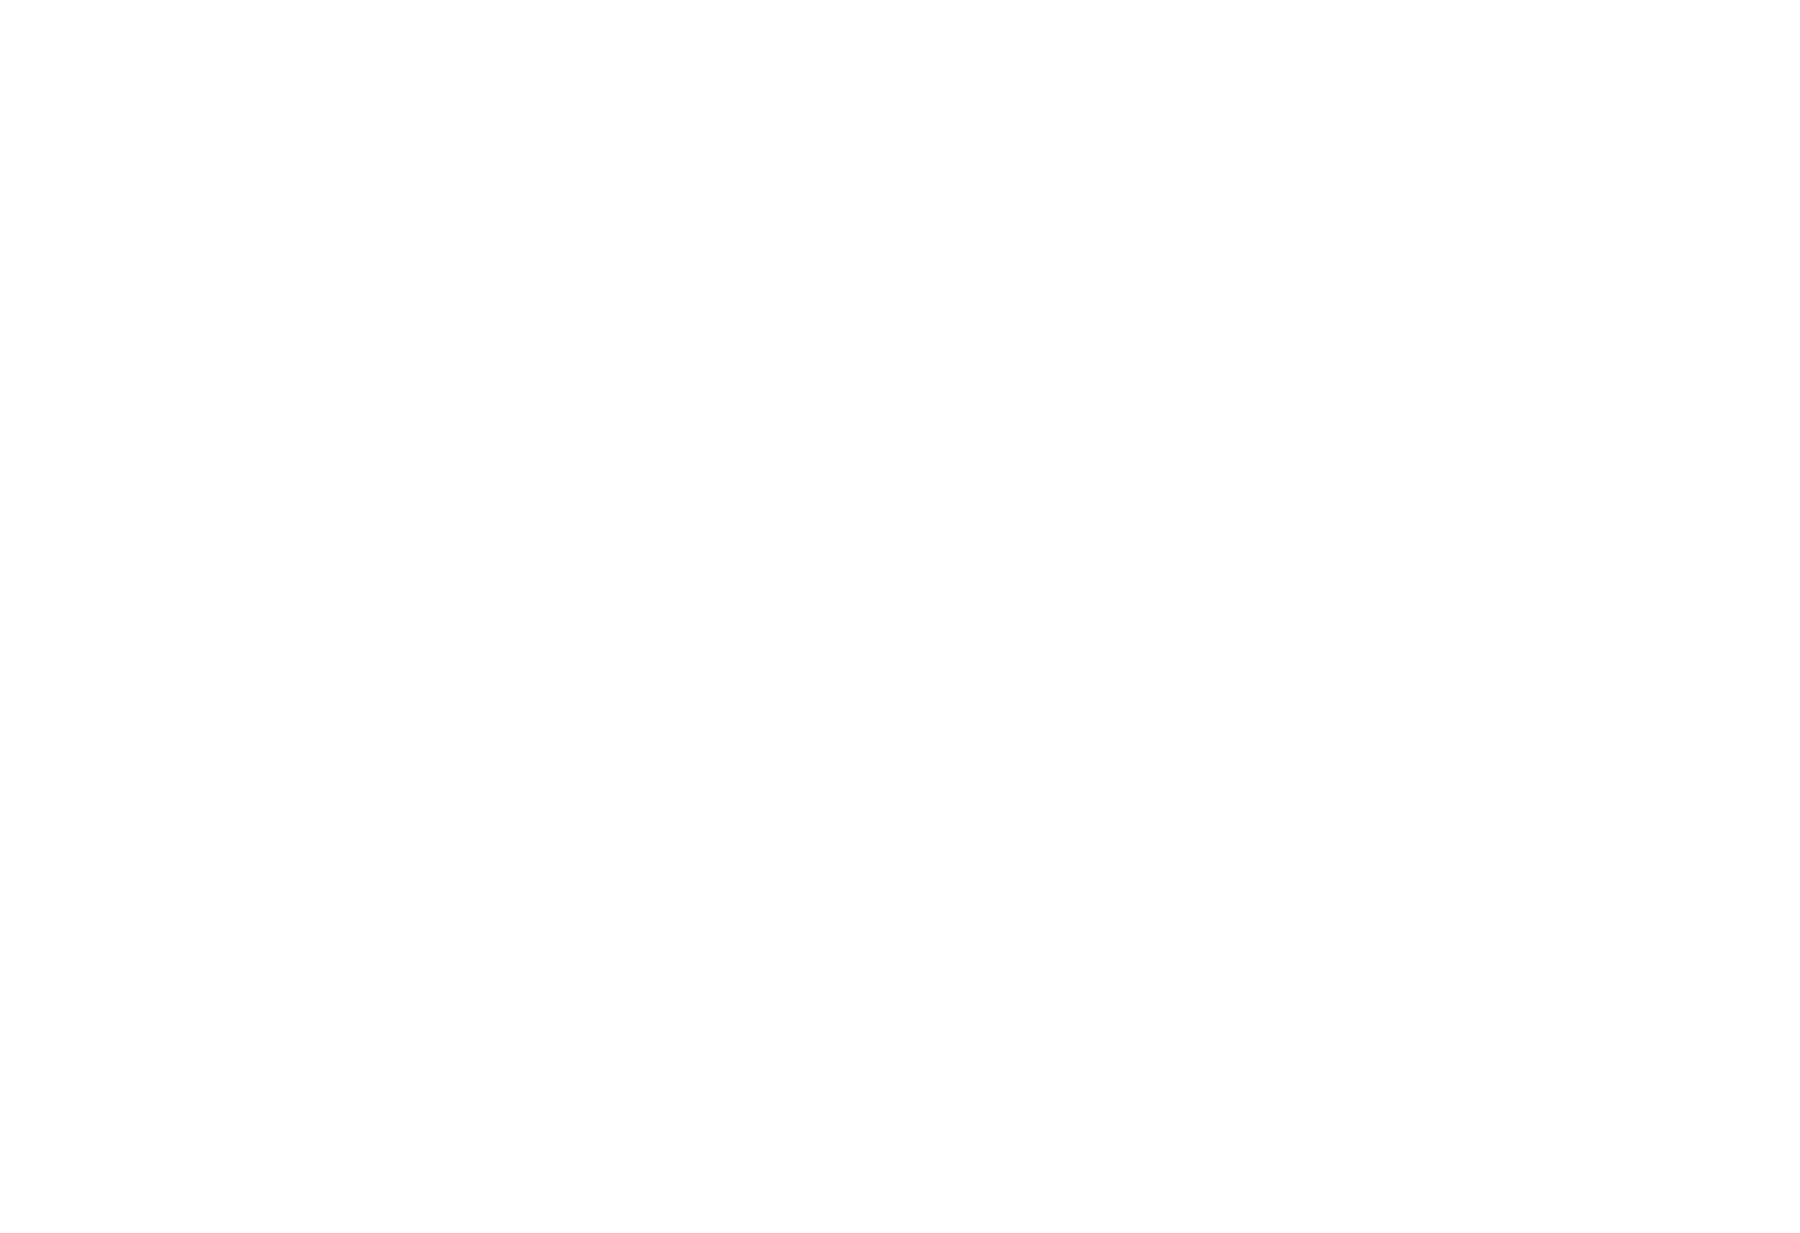 The Plaza Assisted Living